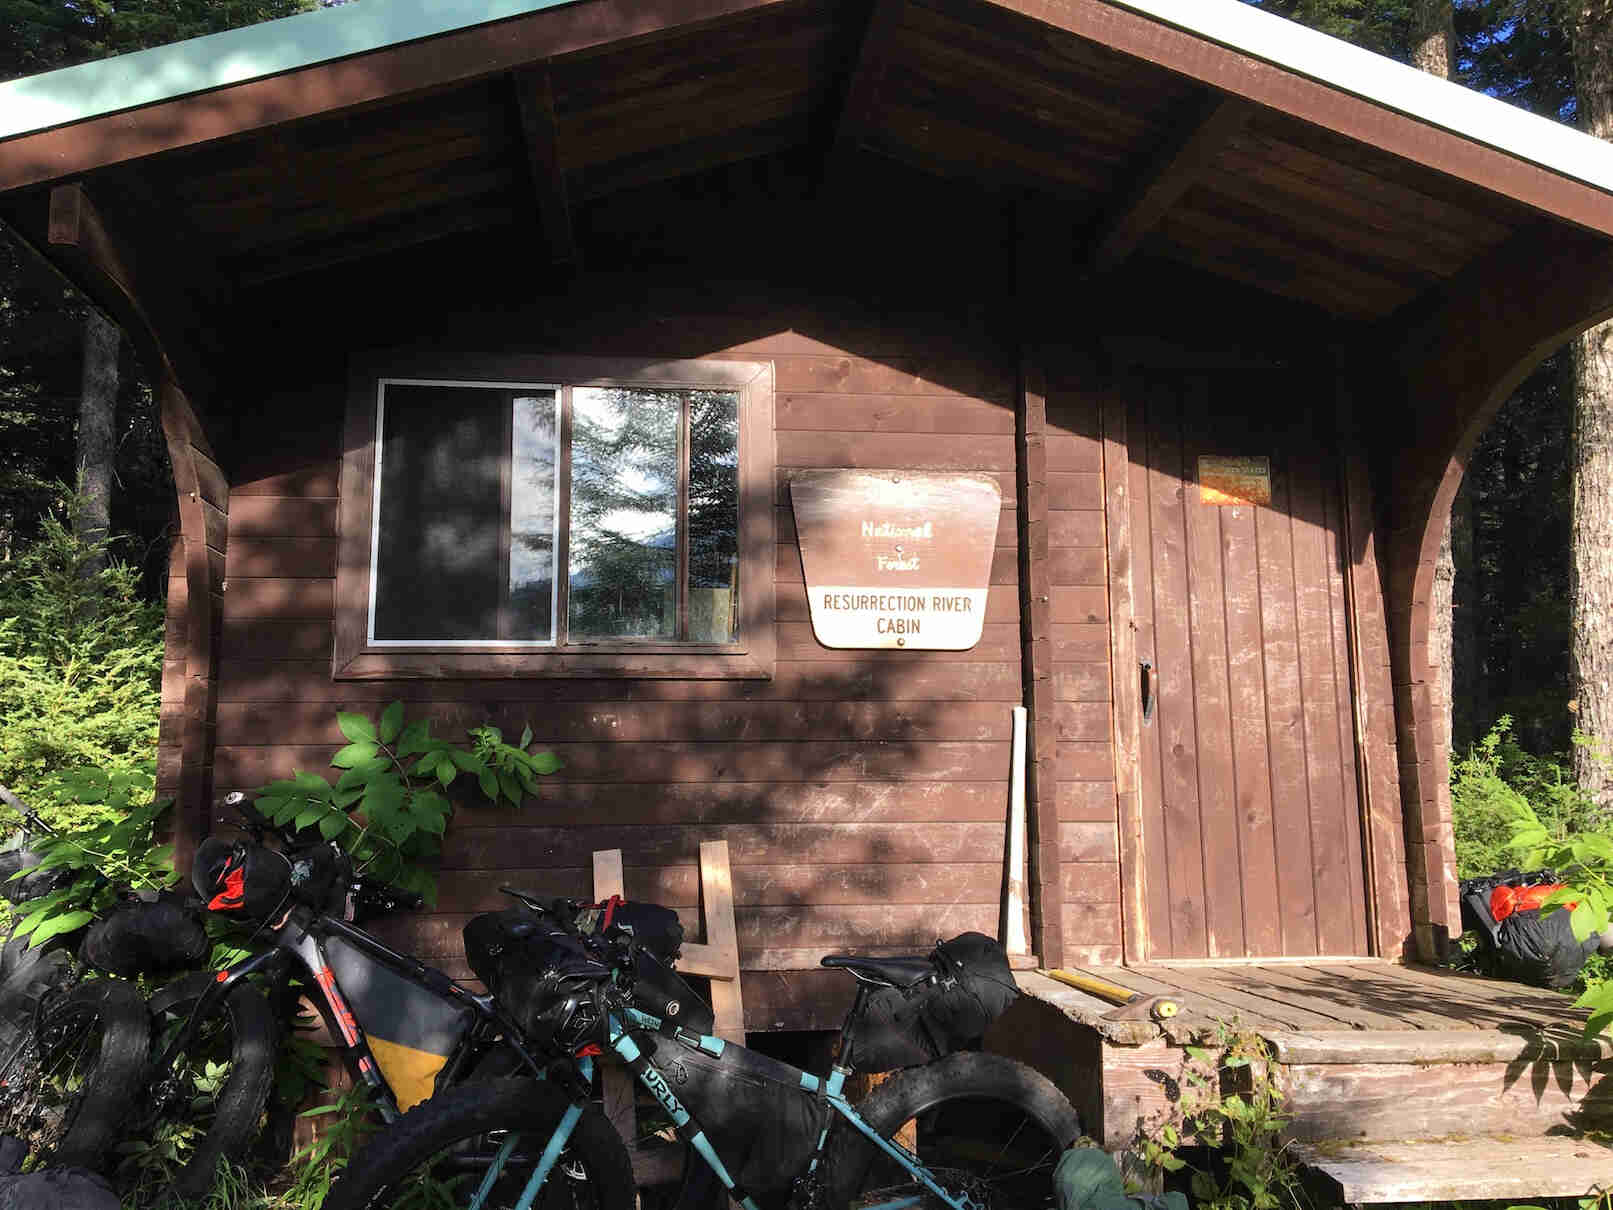 Fat bikes in front of the National Park Resurrection River cabin